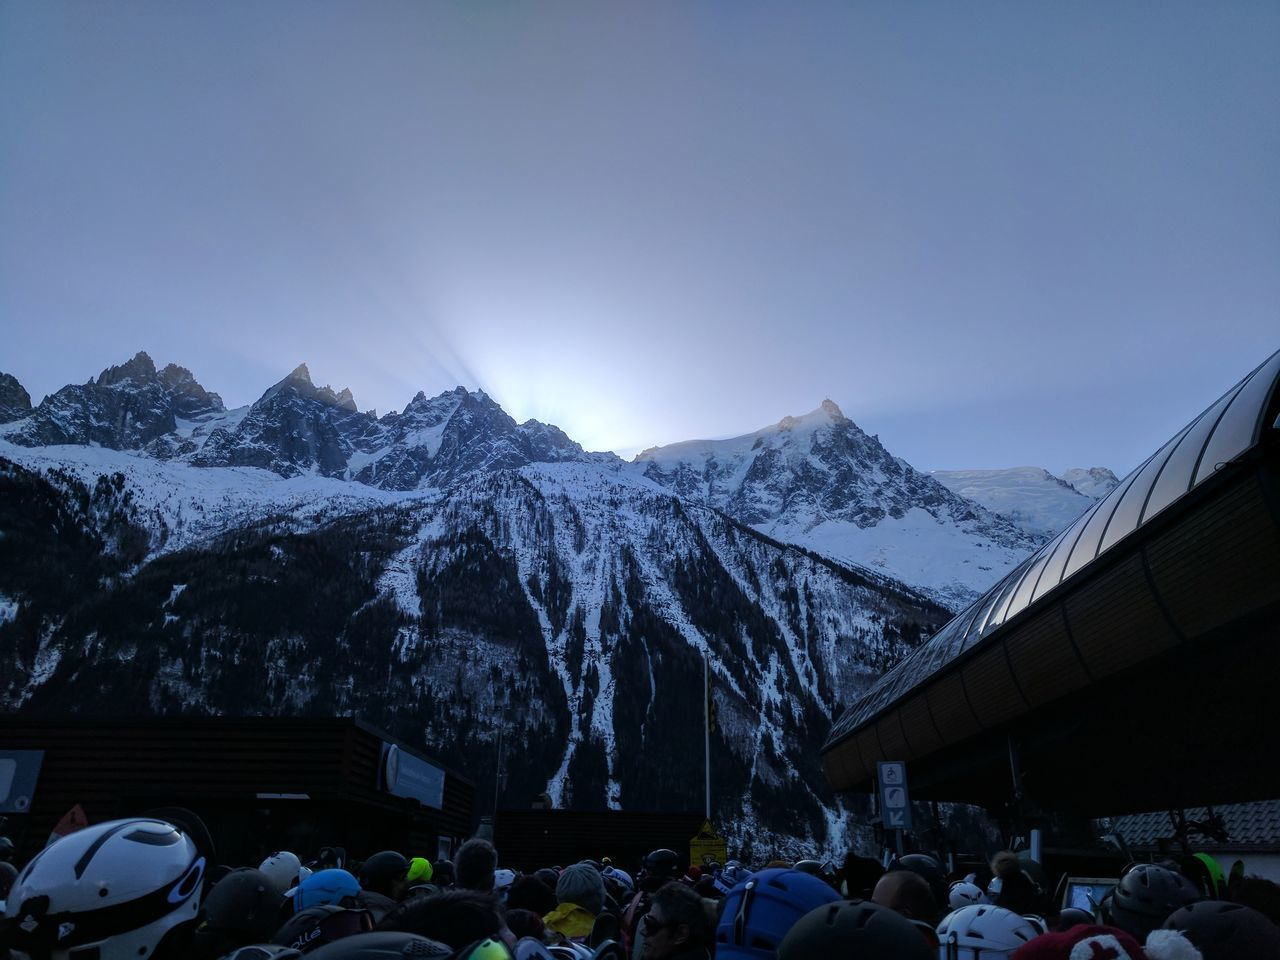 mountain, snow, cold temperature, winter, nature, large group of people, weather, beauty in nature, leisure activity, outdoors, mountain range, scenics, real people, lifestyles, snowcapped mountain, day, landscape, sky, tent, men, architecture, crowd, people